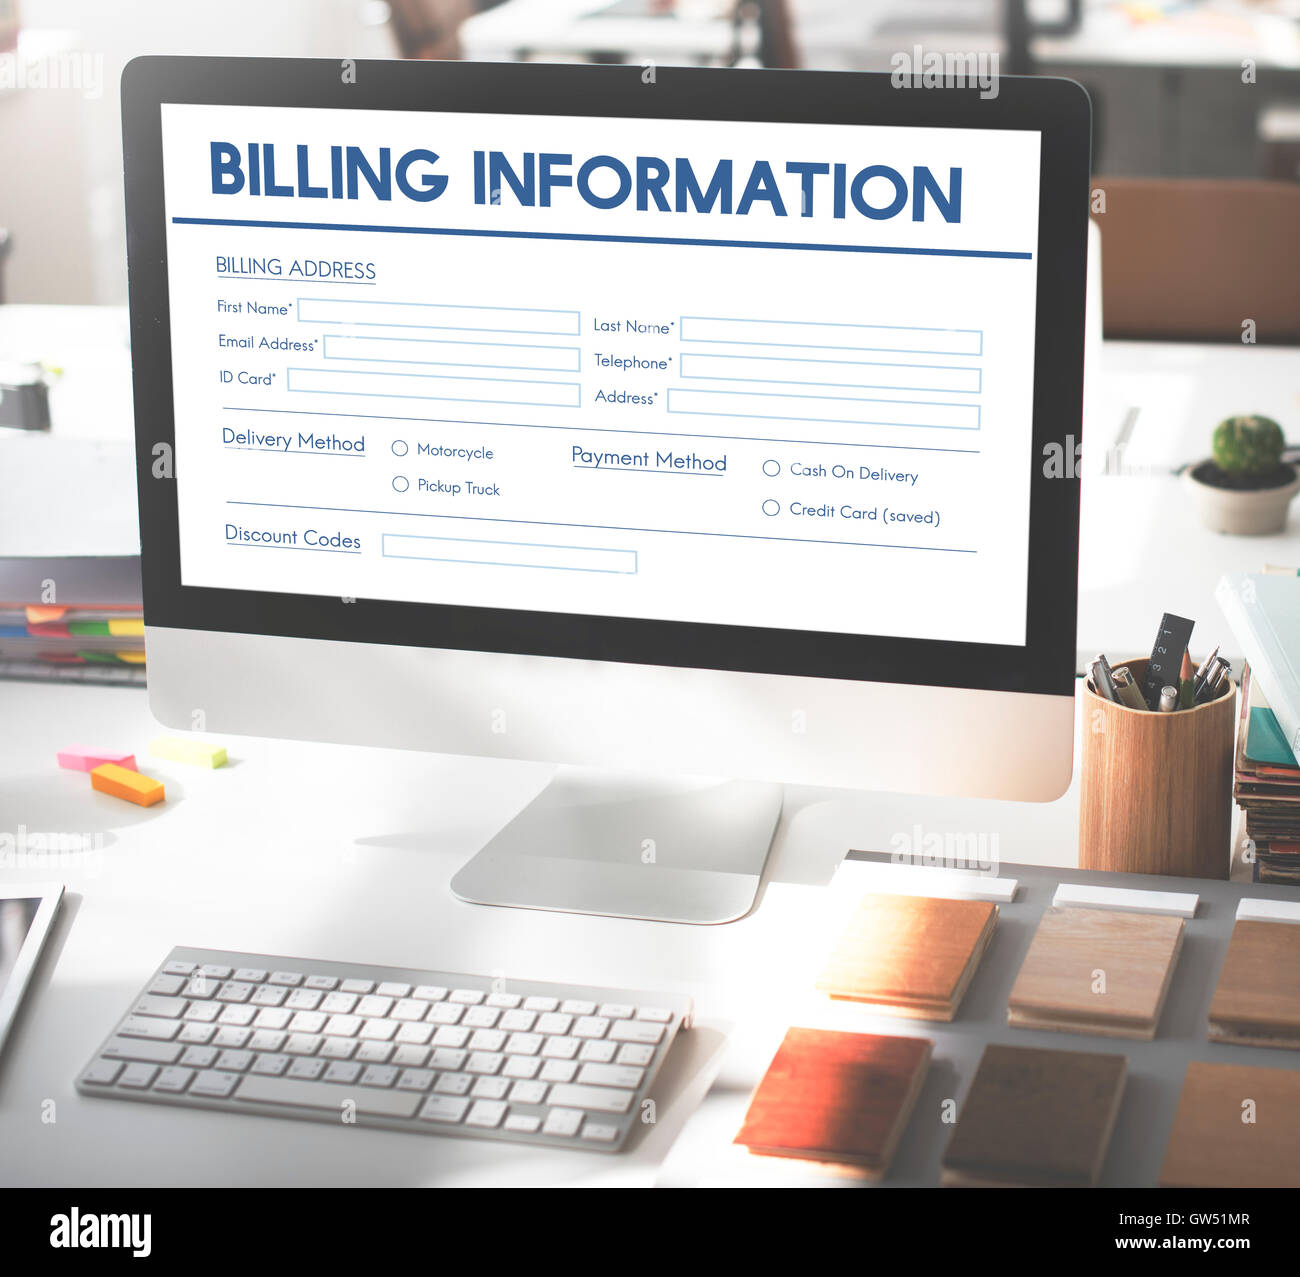 Invoice Billing Information Form Graphic Concept - Stock Image